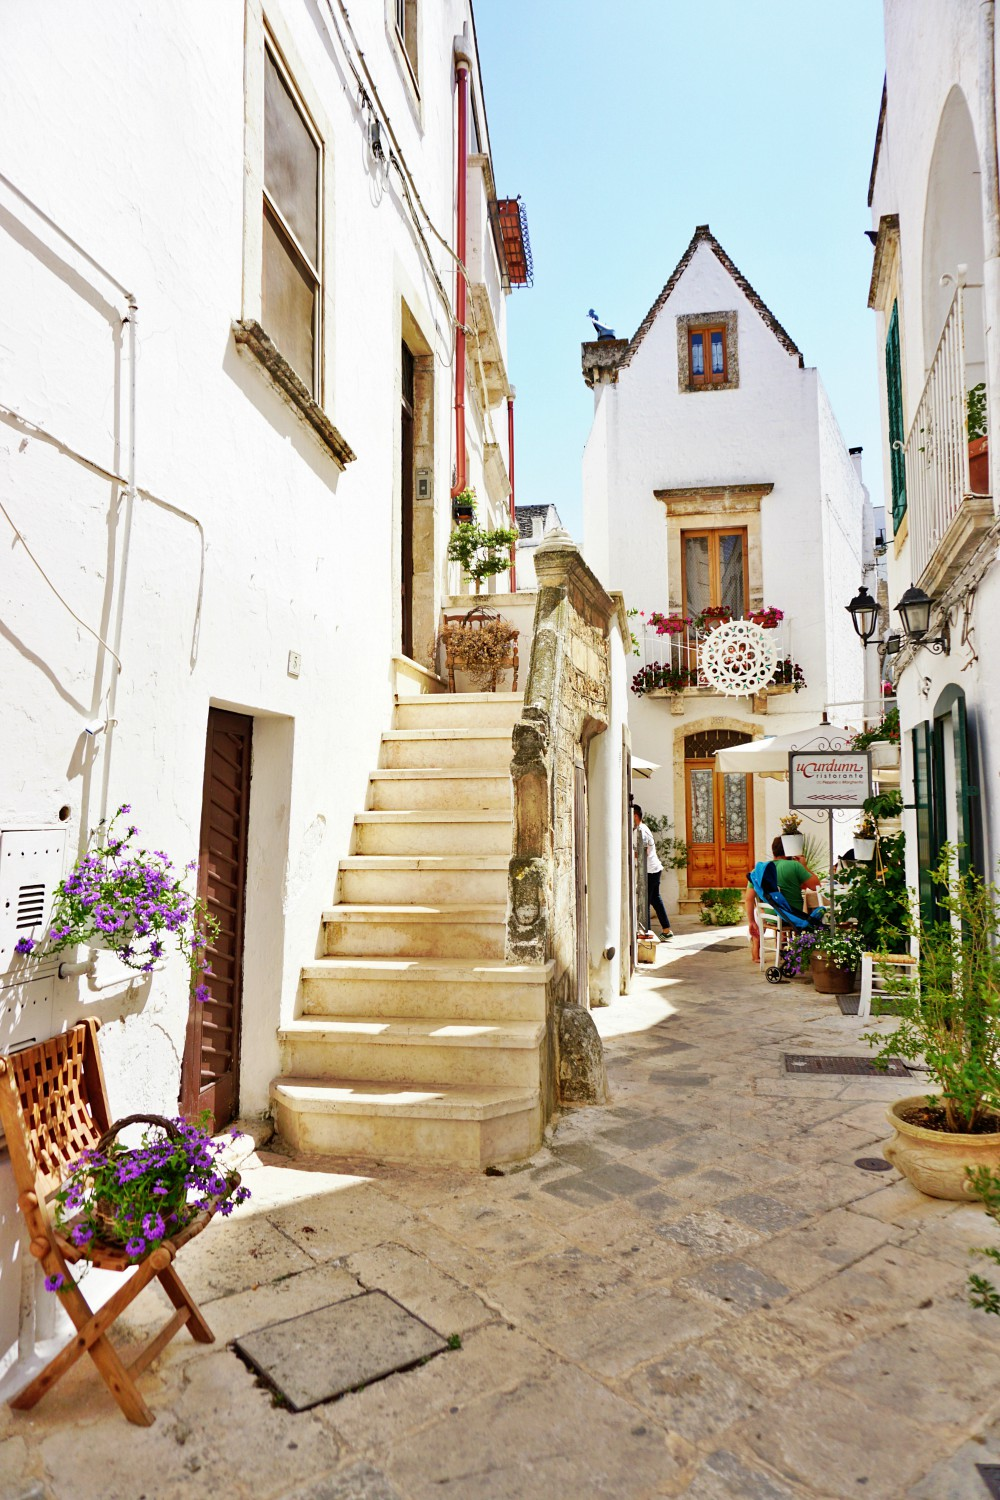 What to see in Locorotondo